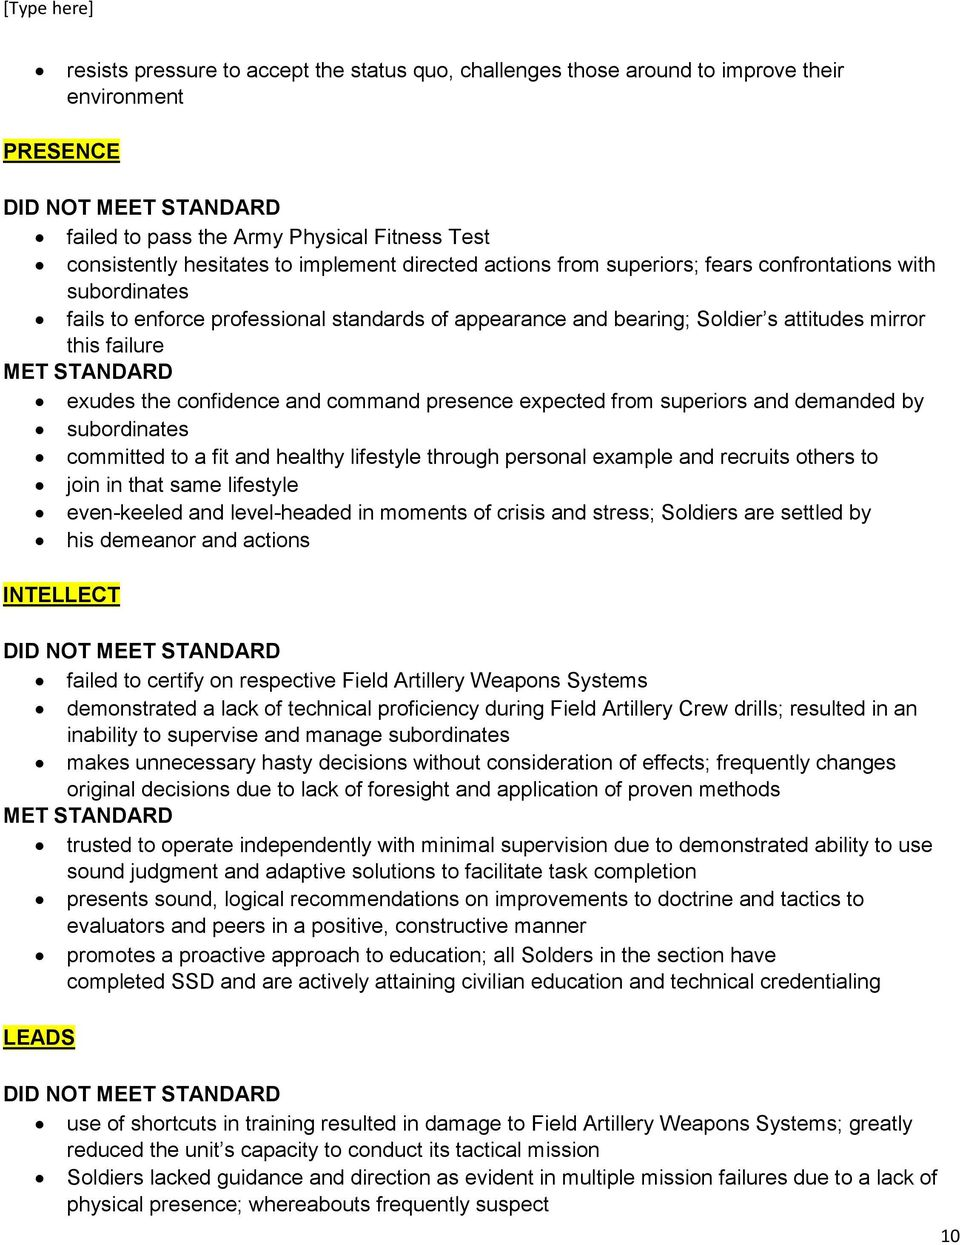 NCOER PERFORMANCE MEASURES (NCOER BULLET COMMENTS) SUPPLEMENT TO THE CENTER FOR ARMY LEADERSHIP ...